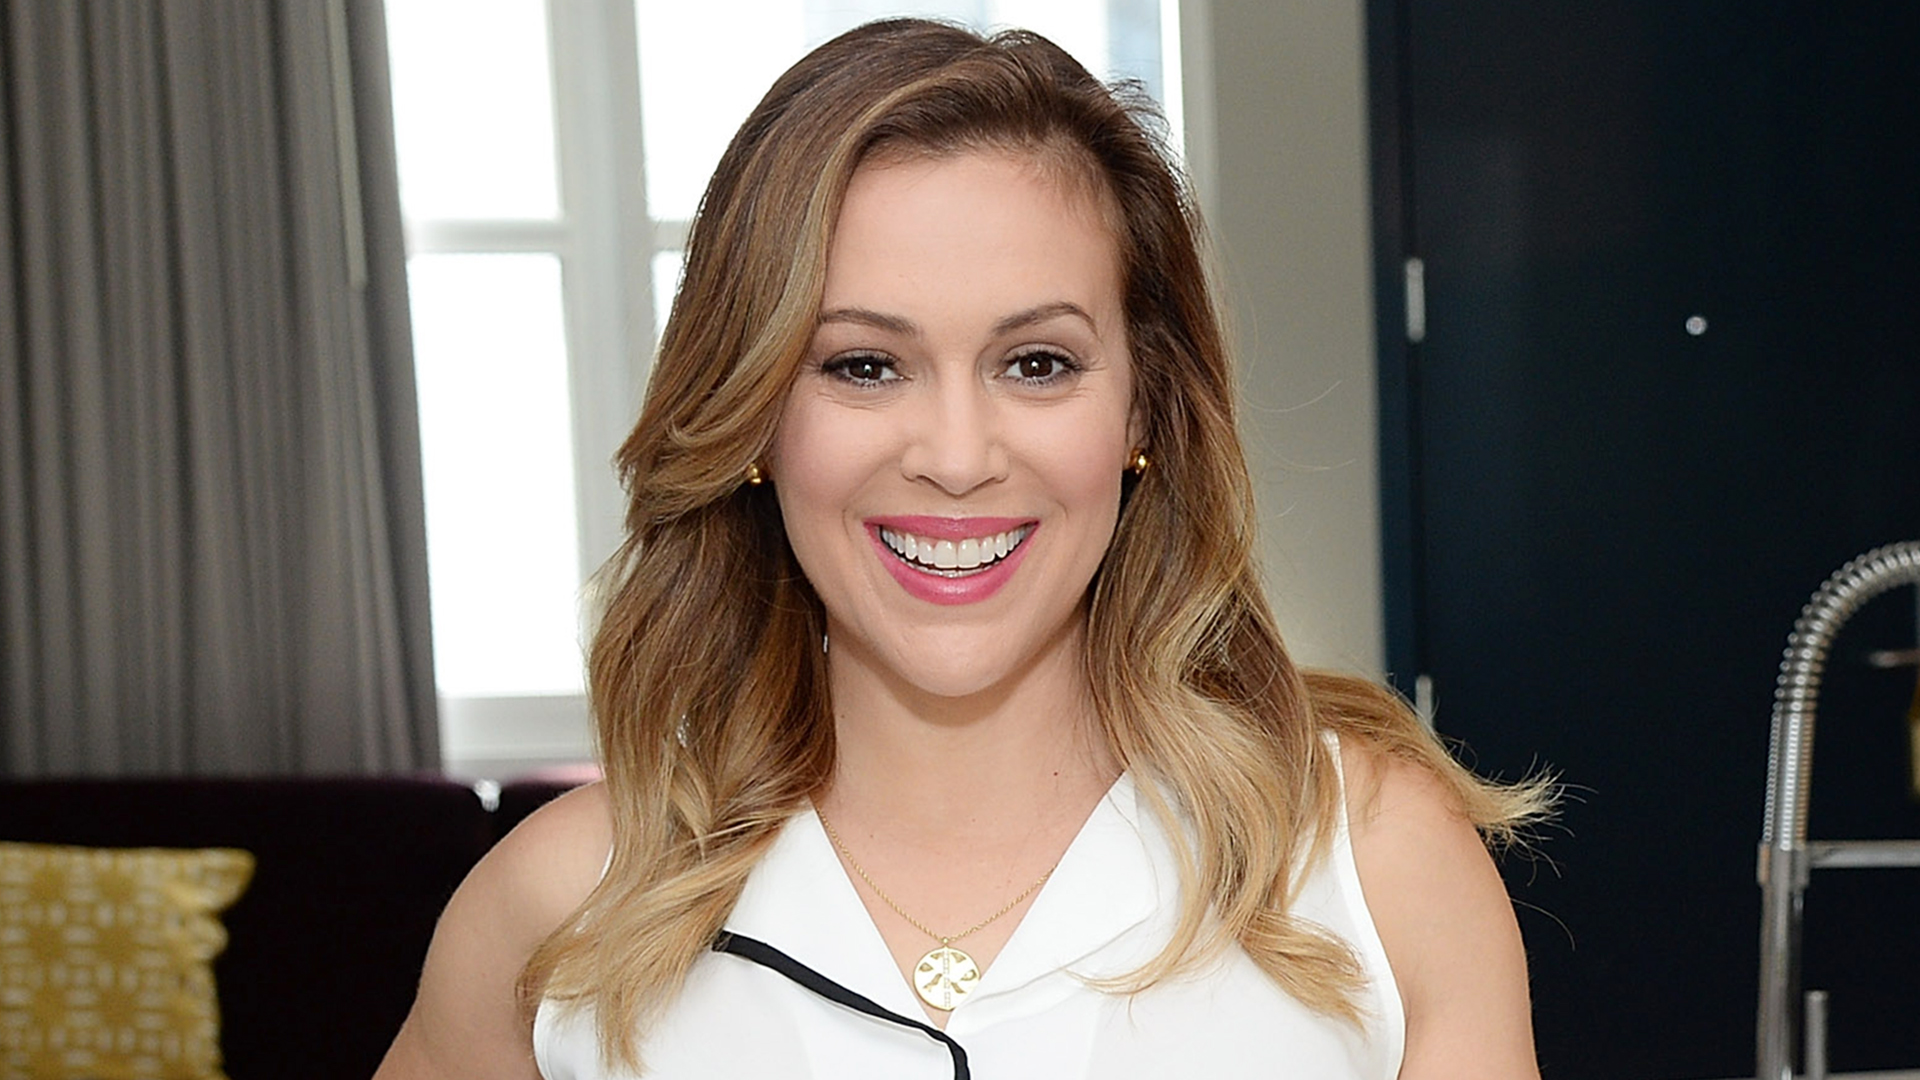 Alyssa Milano Hilary Duff Get Their Hair Cropped In Time